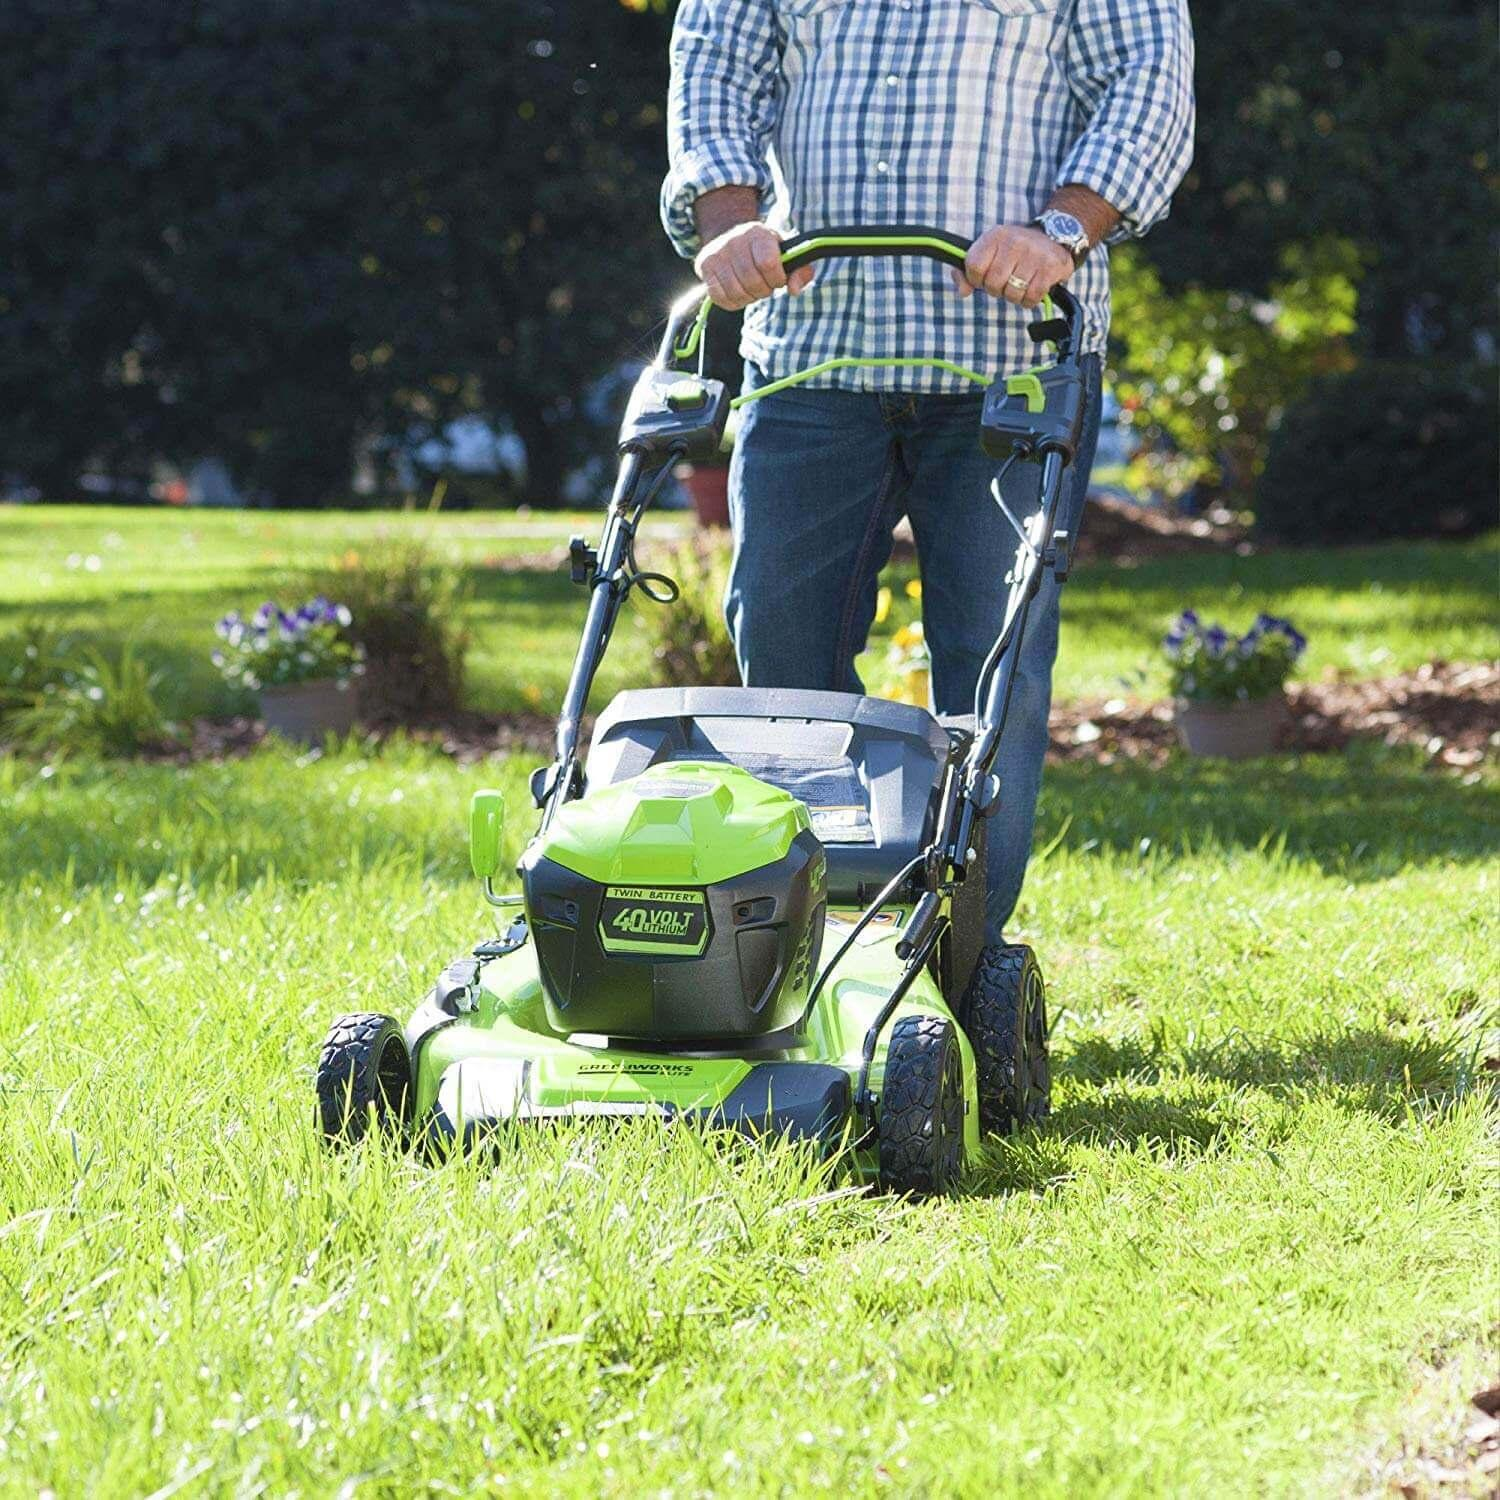 9 Best Self Propelled Electric Lawn Mower Reviews for 2021 ...